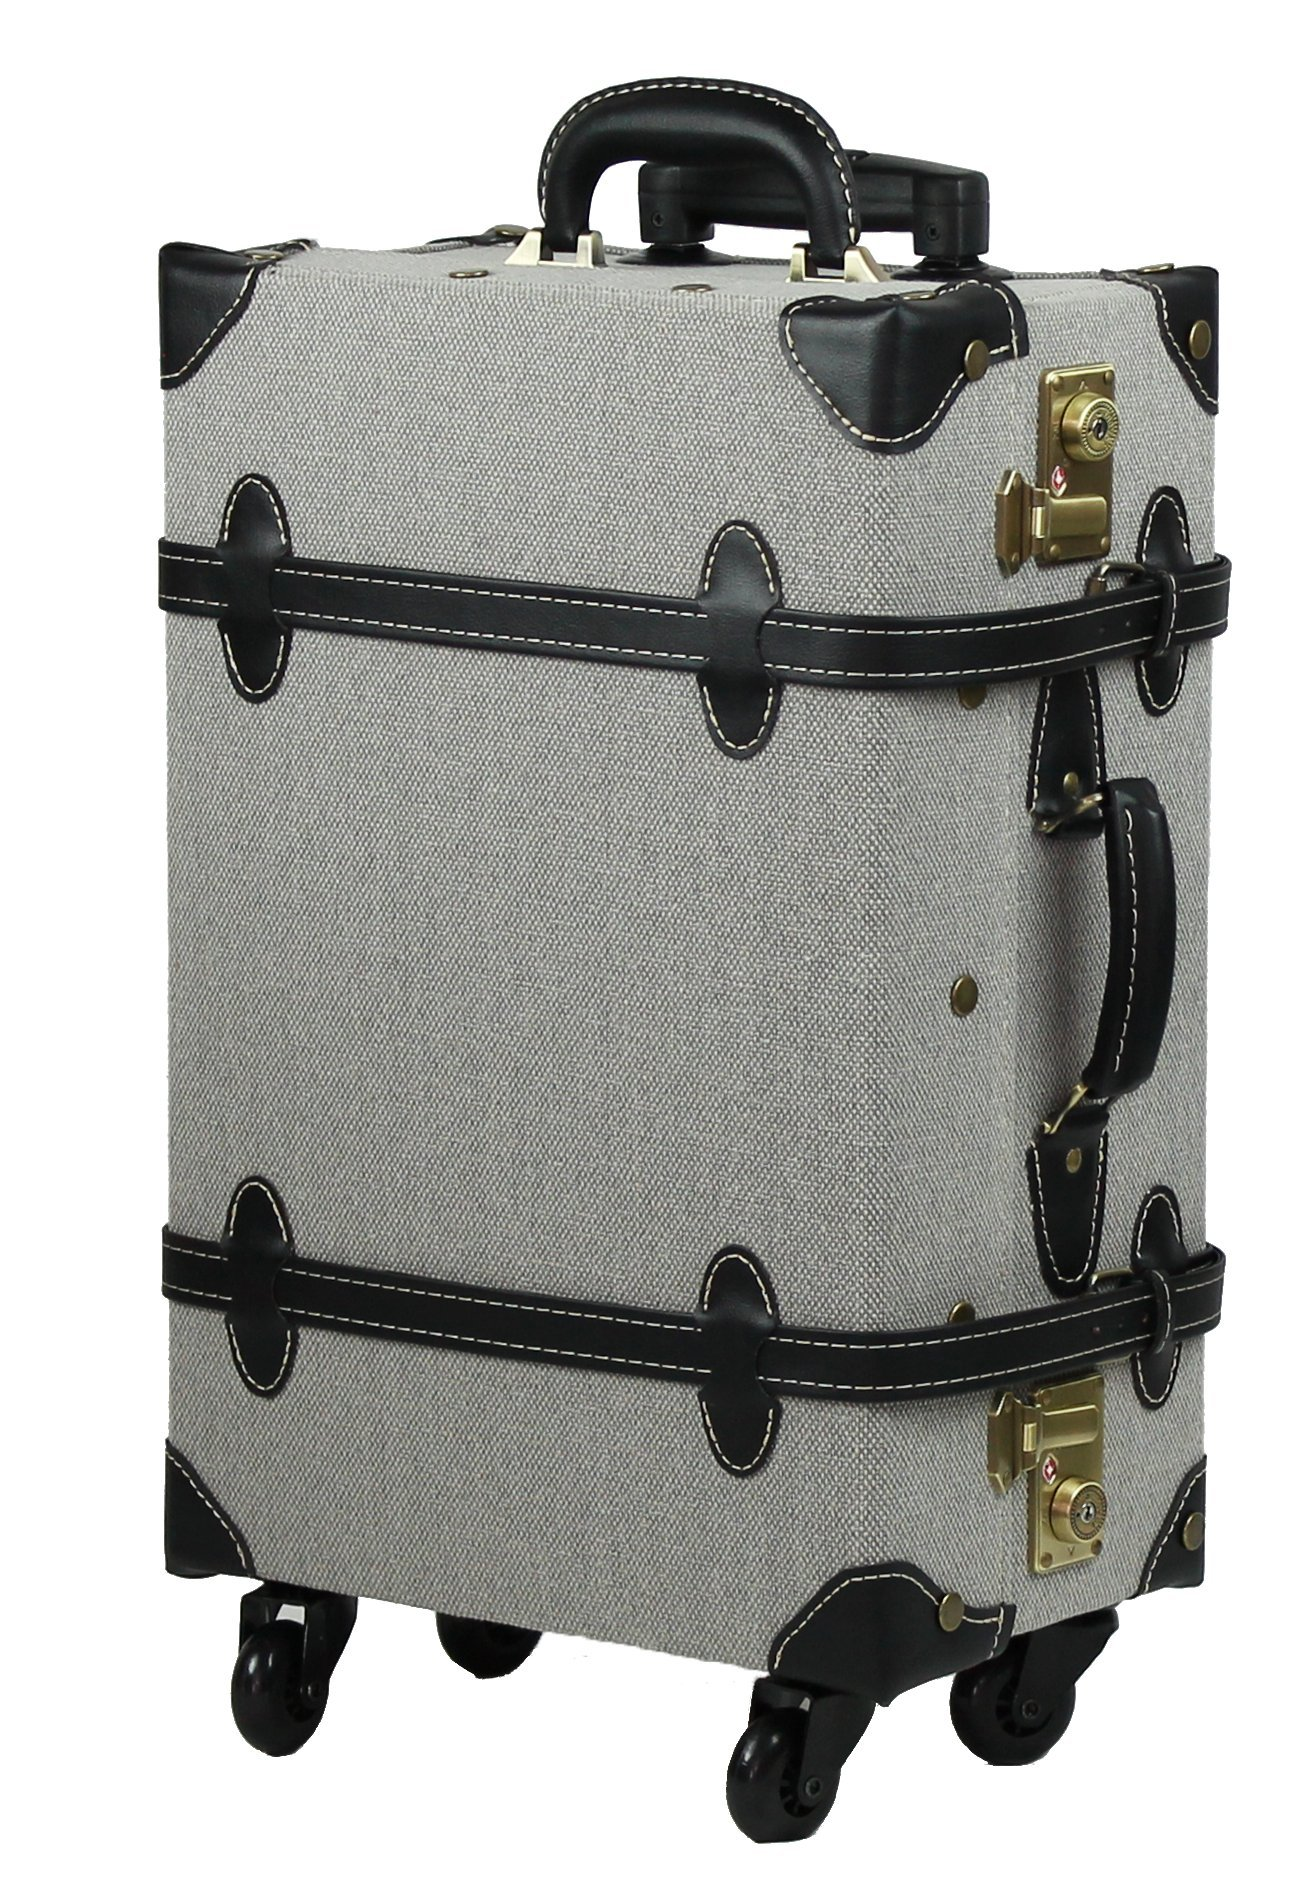 MOIERG Vintage Trolley Luggage suitcase 2tone Cotton Gray Medium (81-55046-12)